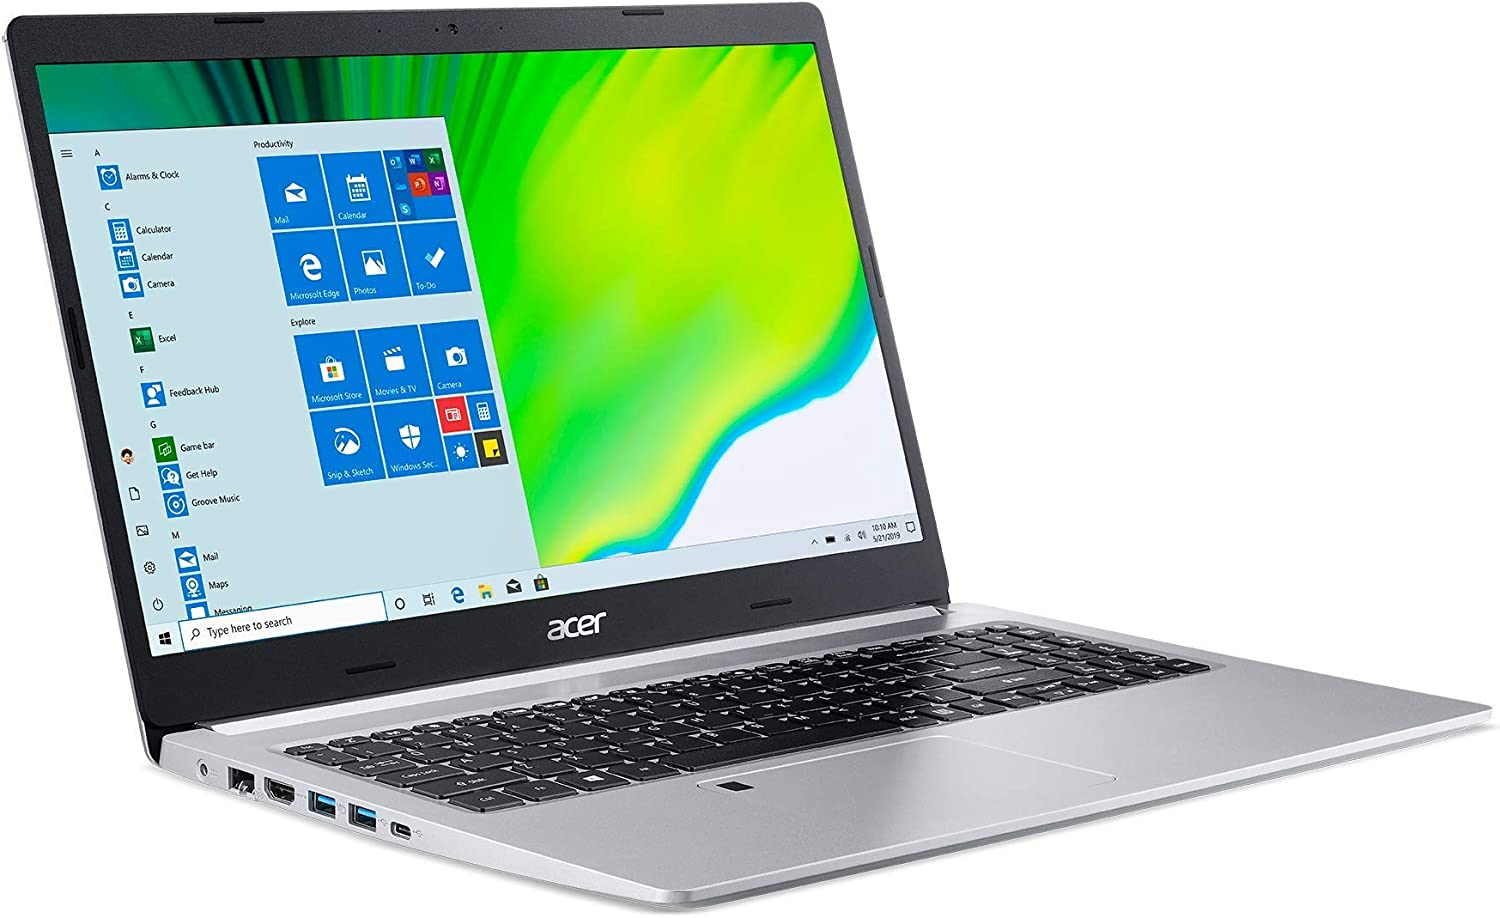 "Acer Aspire 5 A515-44-R93G, 15.6"" Full HD, AMD Ryzen 3 4300U Mobile Processor with Radeon Graphics, 4GB DDR4, 128GB NVMe SSD Windows 10 S (Renewed)"